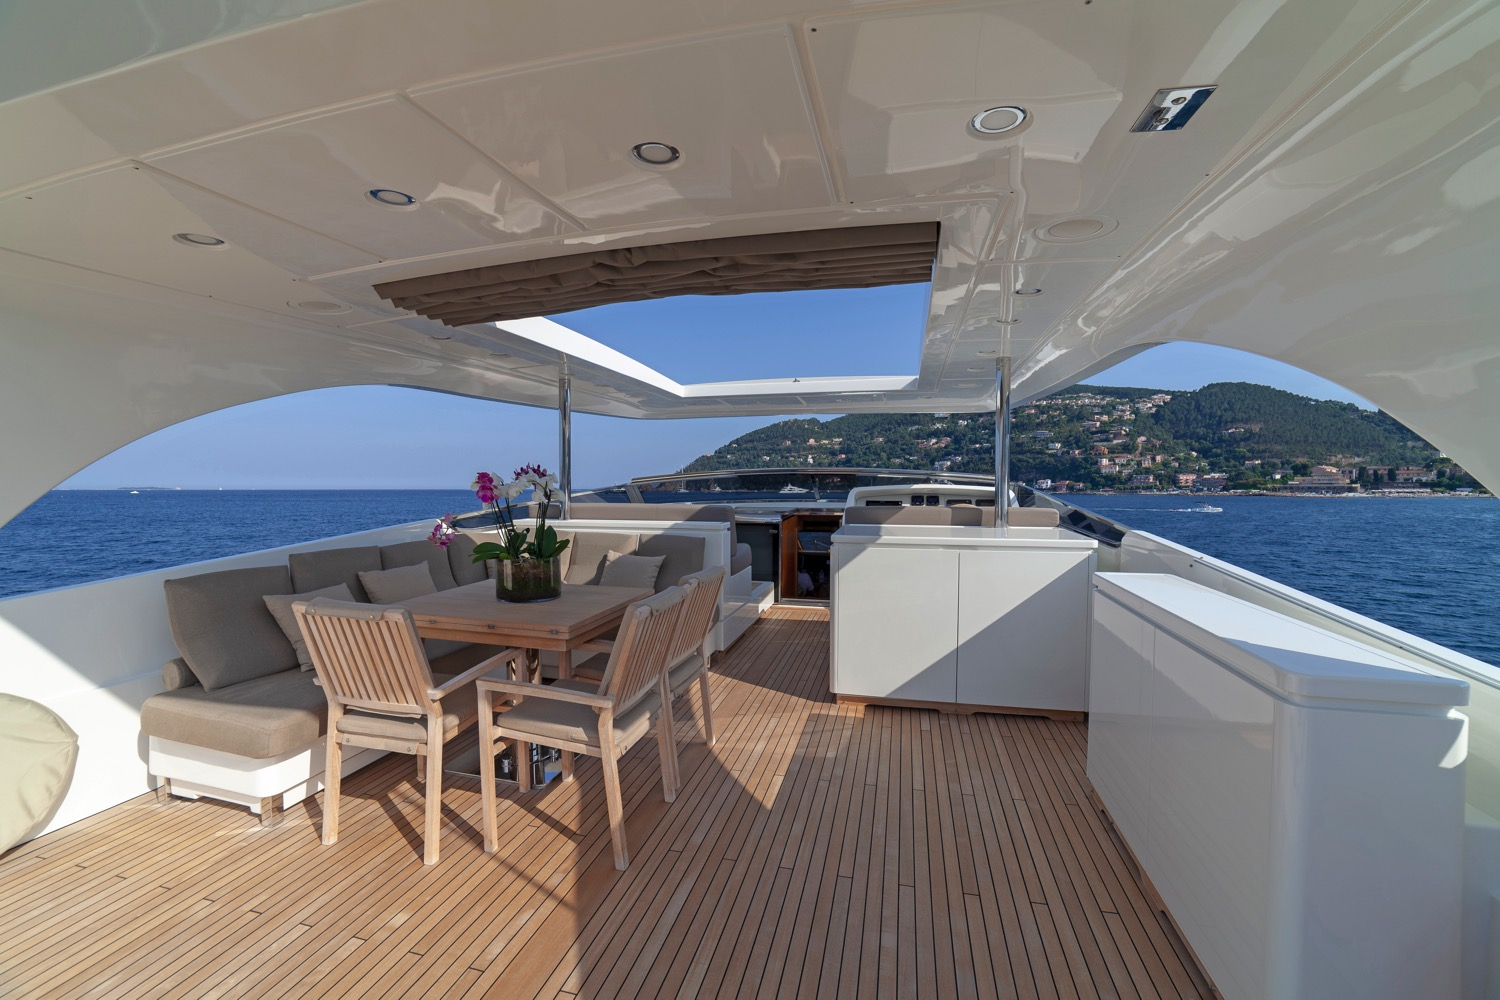 Sanlorenzo SL88 Yacht for sale 58